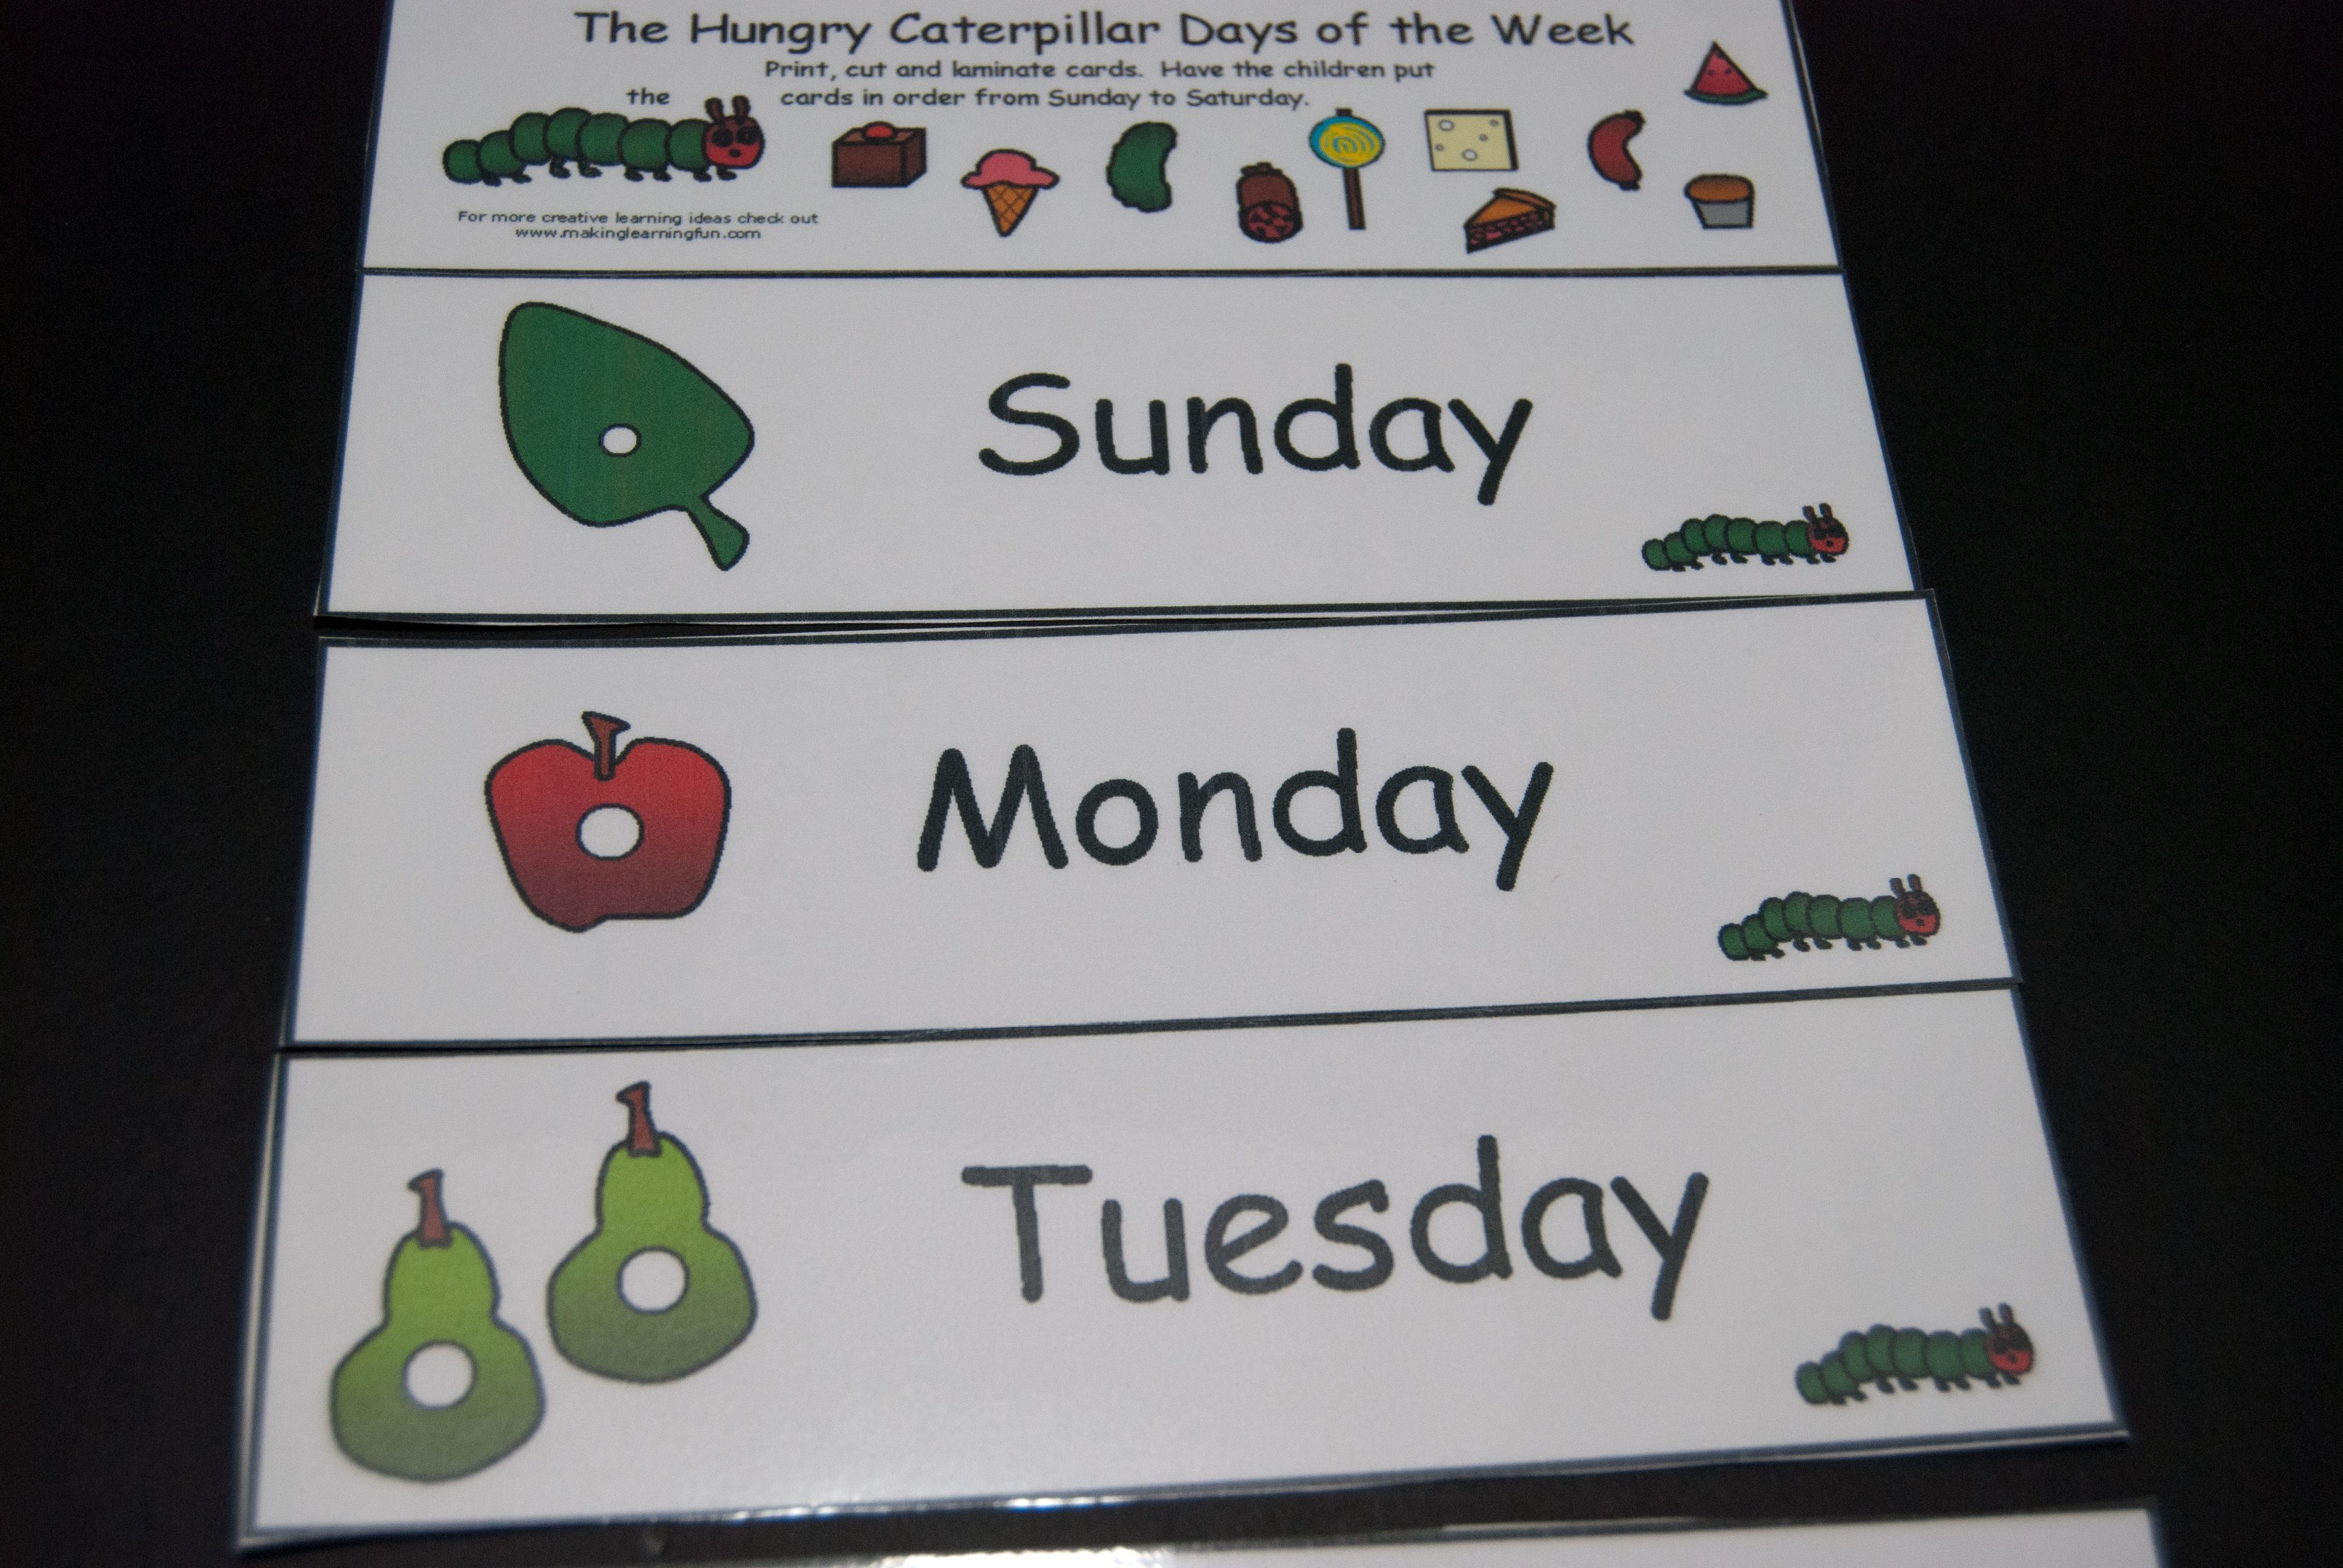 Hungry Caterpillar Days of the Week-3